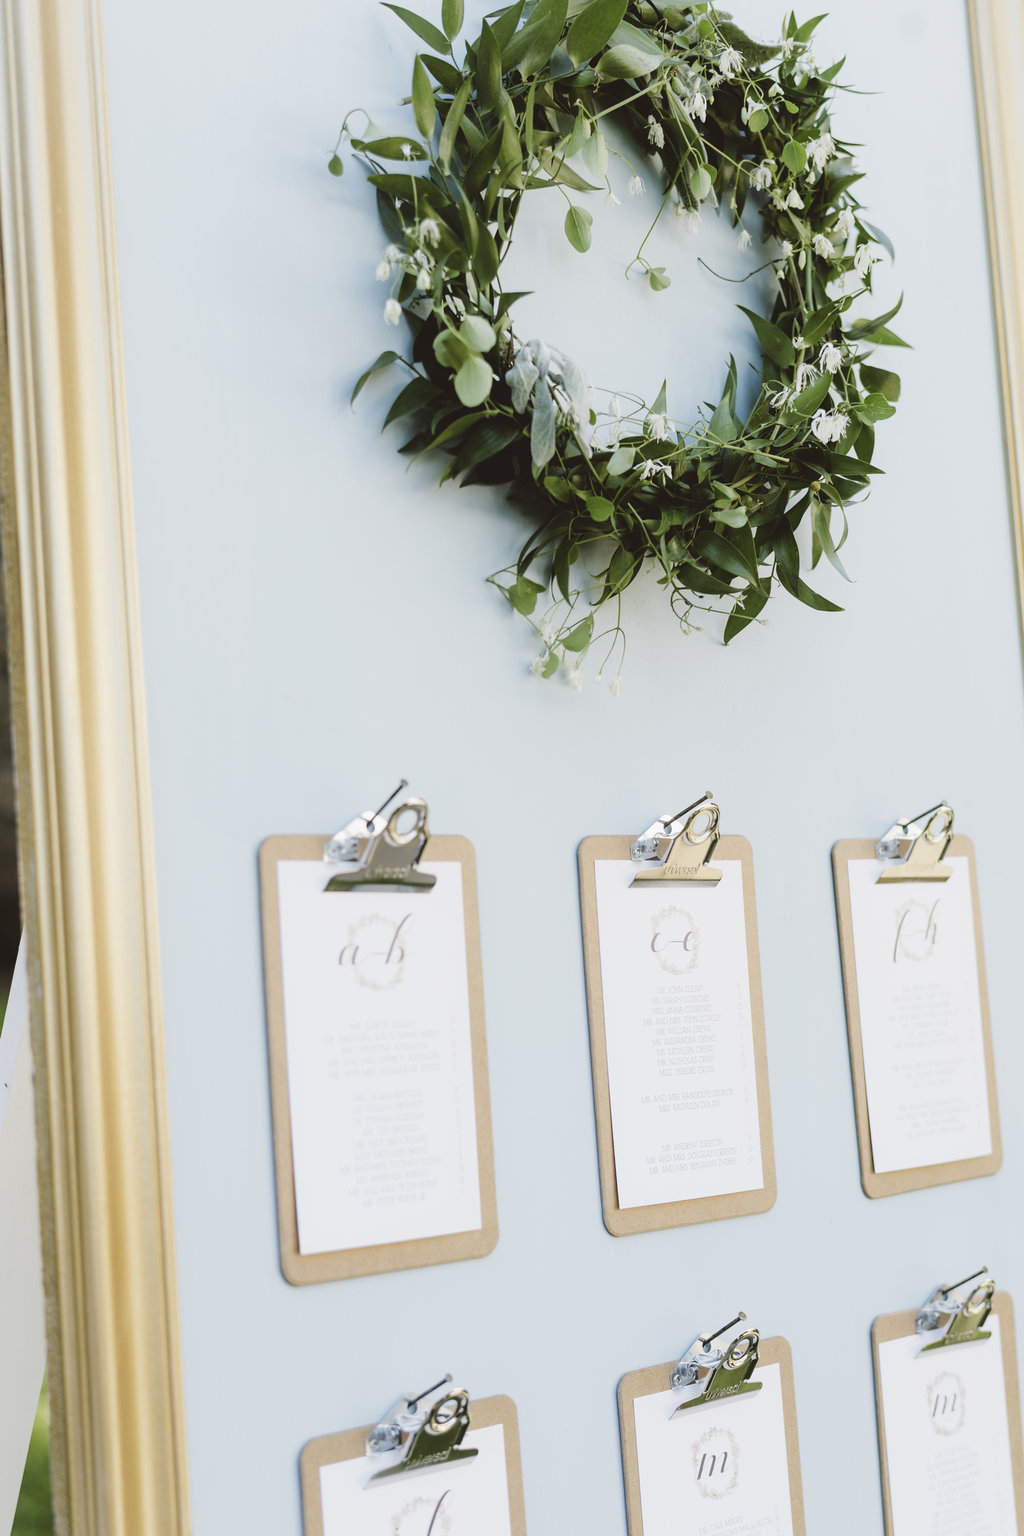 Coppola Creative Wedding Design _ Alicia King Photo29.jpg